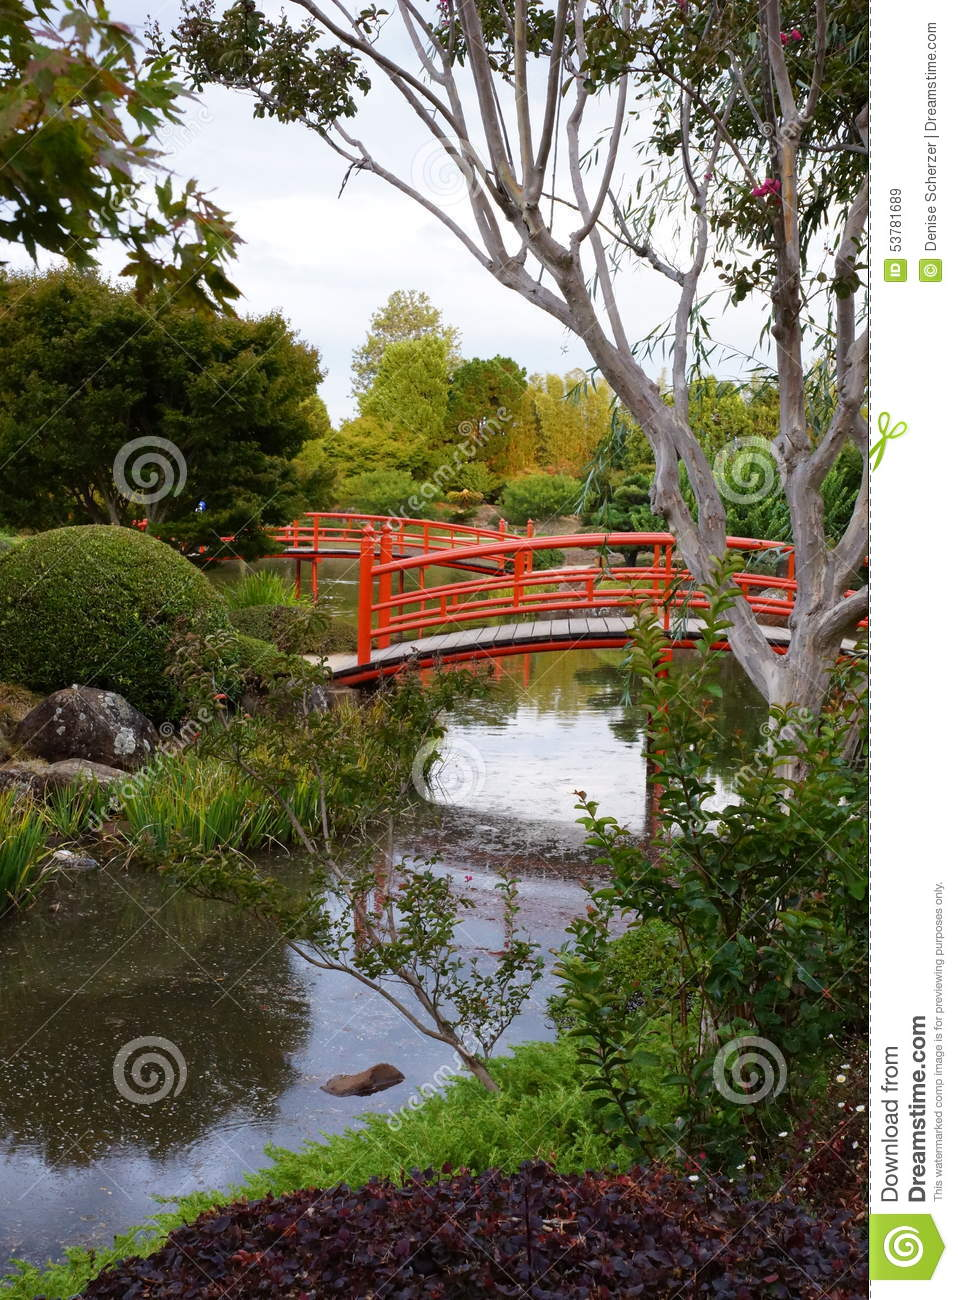 Japanese Garden With Bridges And River Mirrors